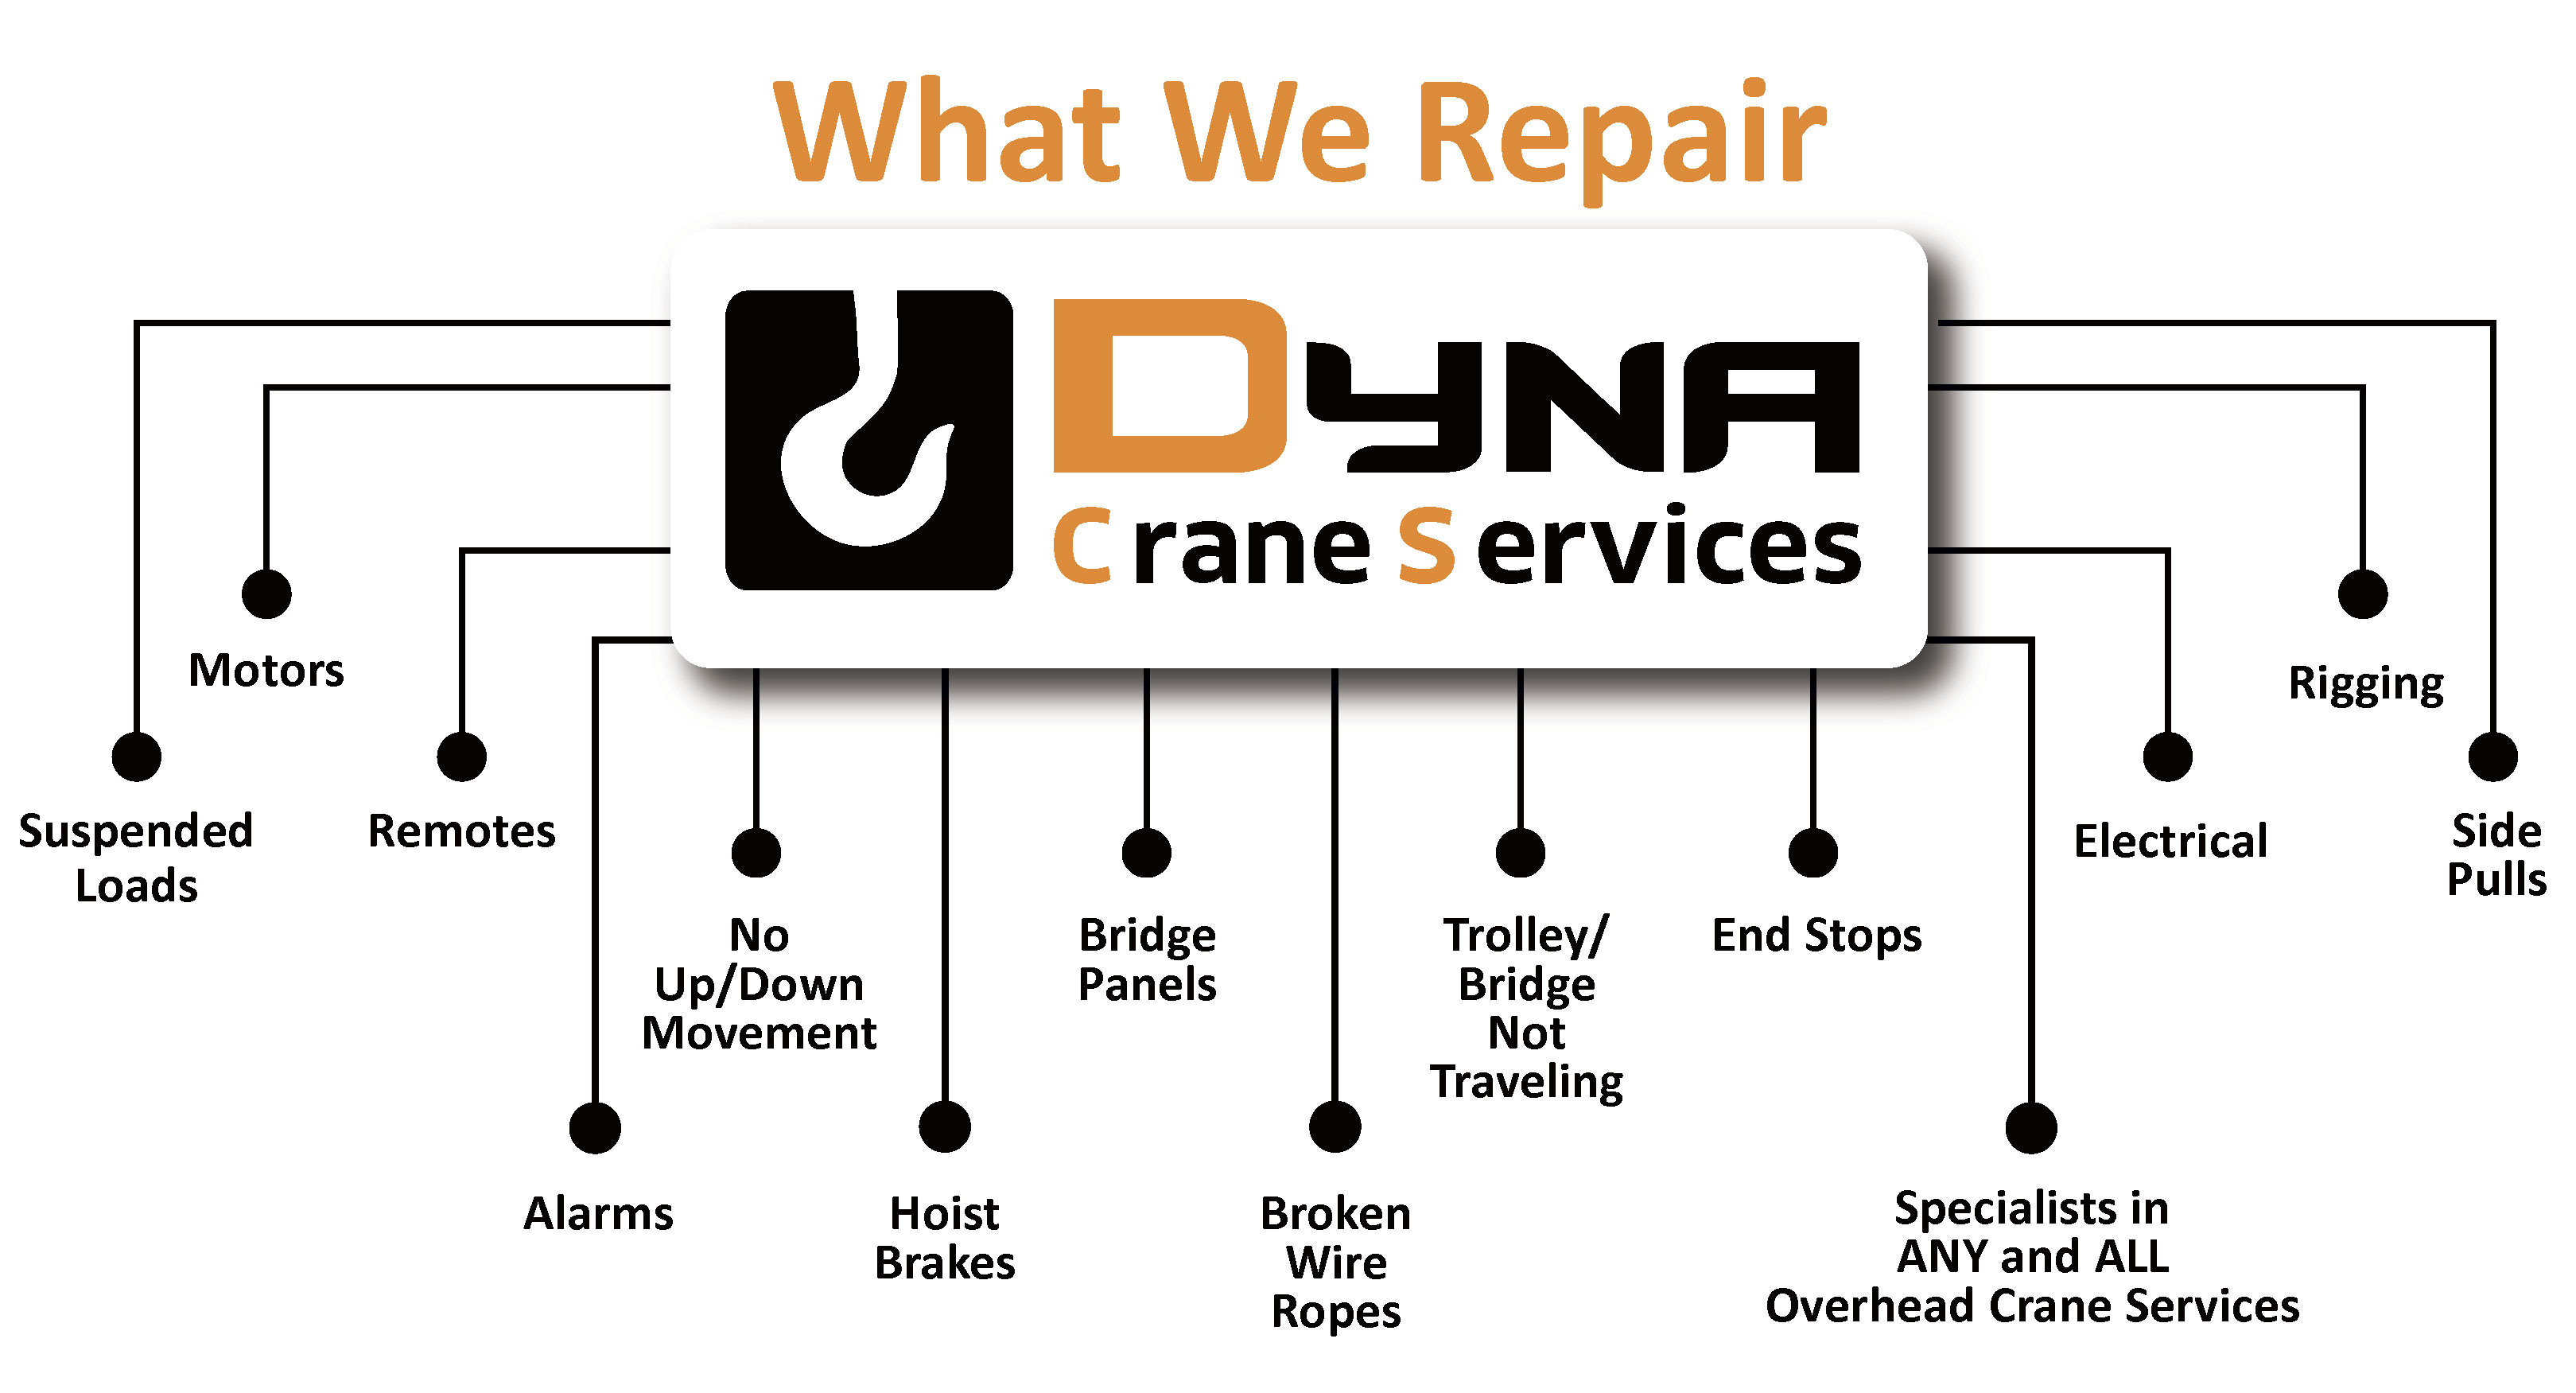 What We Repair: Suspended Loads, Motors, Remotes, Alarms, No Up/Down Movement, Hoist Brakes, Bridge Panels, Broken Wire Ropes, Trolley/Bridge Not Traveling, End Stops, ANY and ALL Overhead Crane Services, Electrical, Rigging, and Side Pulls